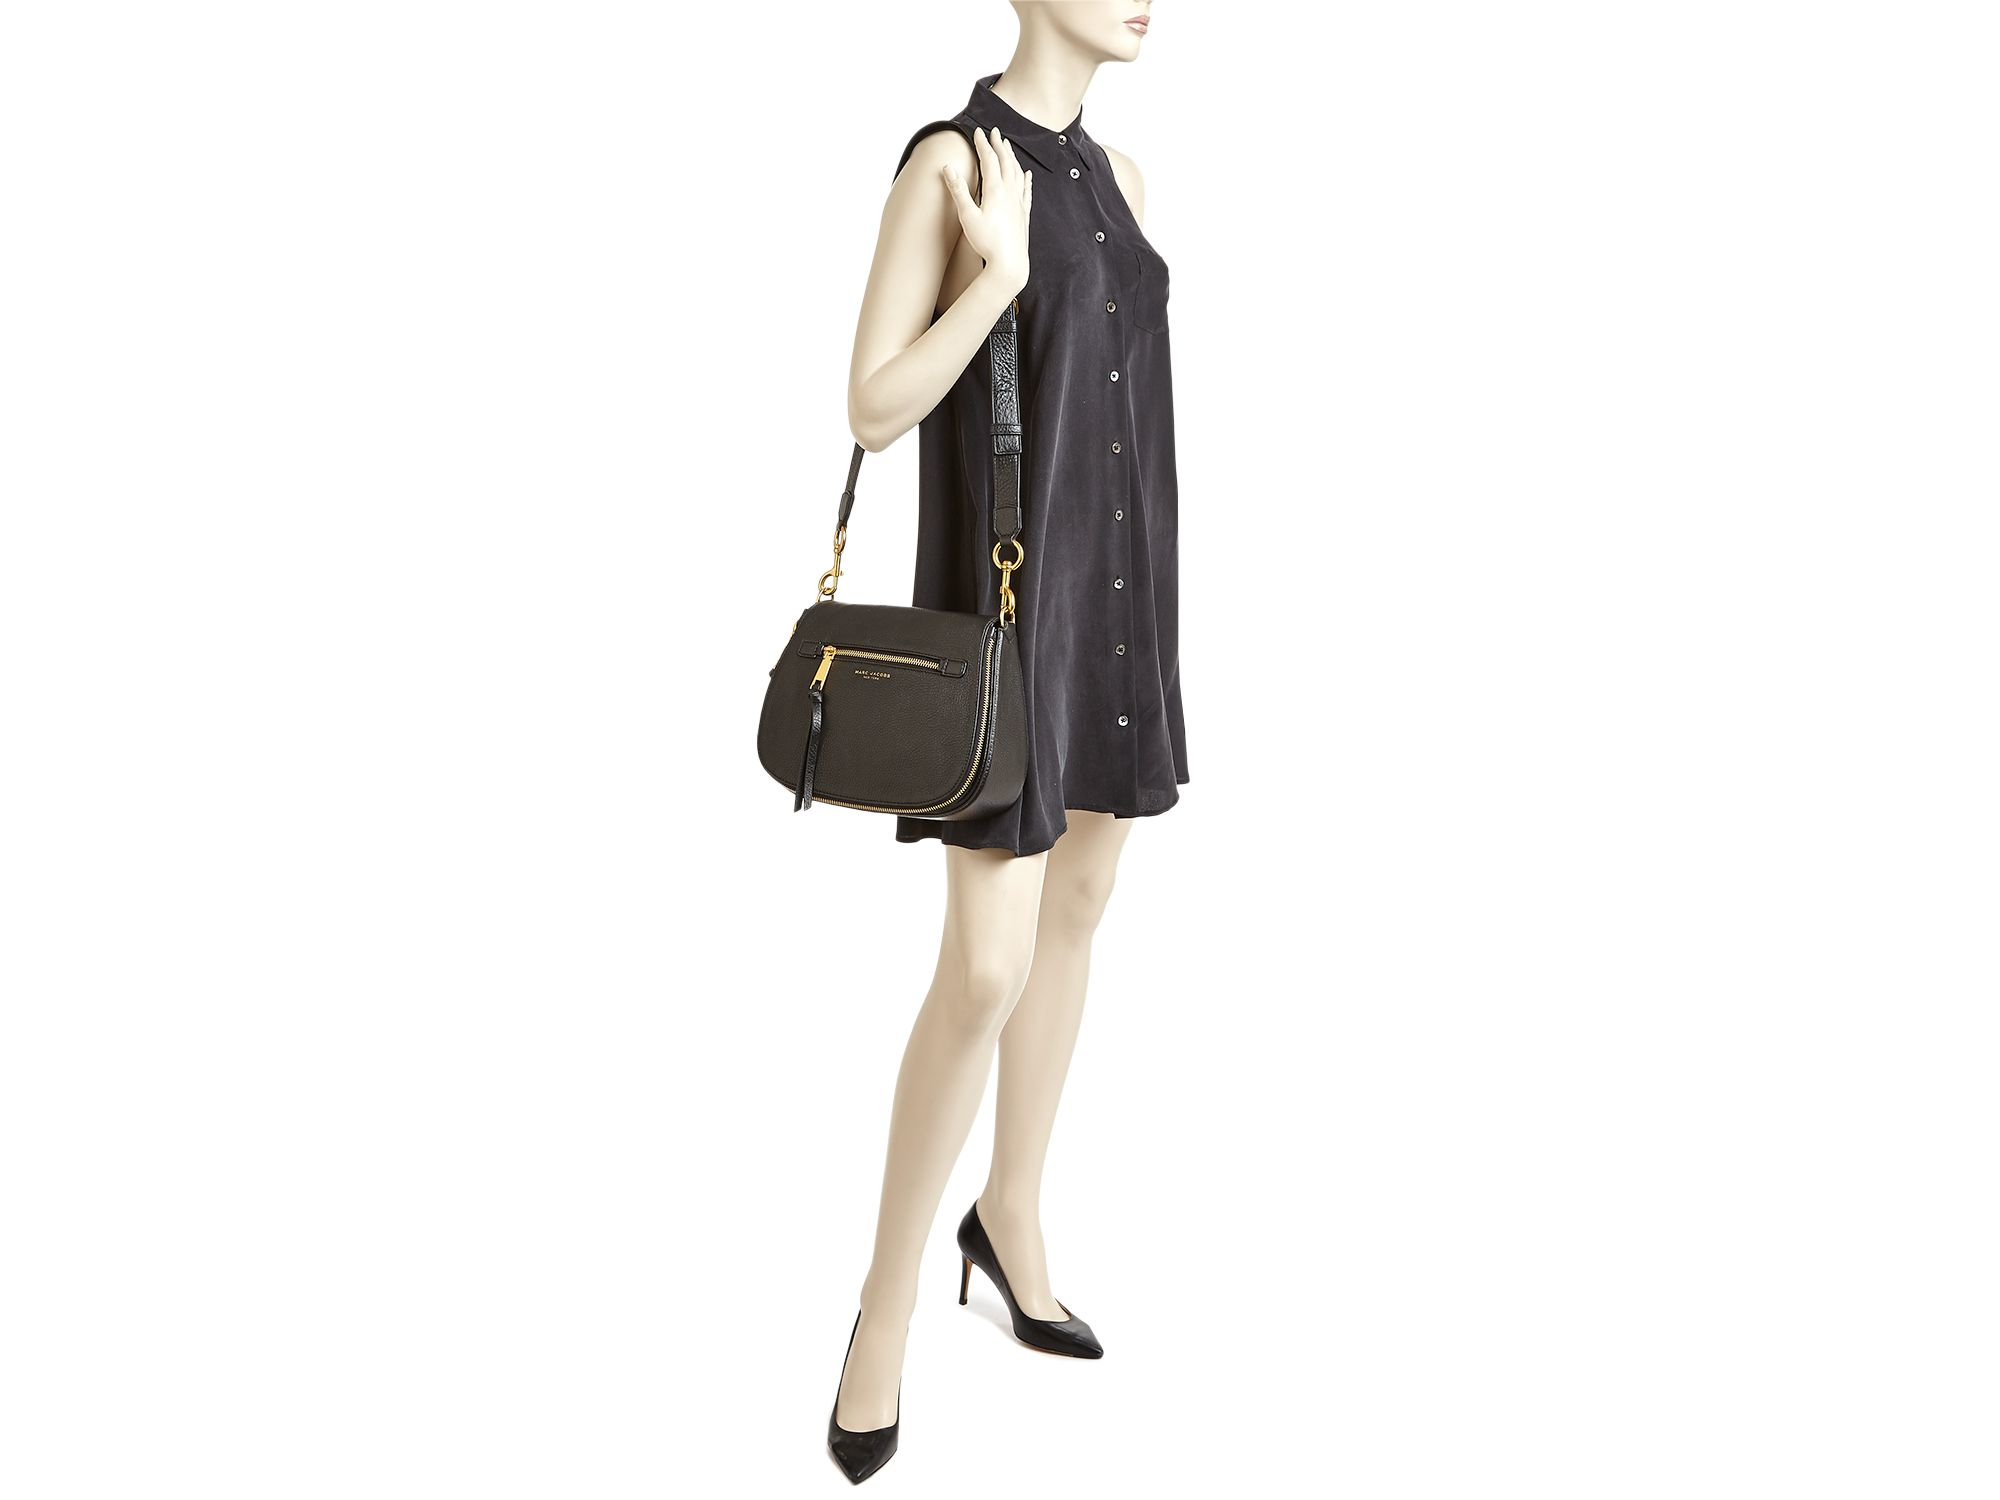 8309e4ece Gallery. Previously sold at: Bloomingdale's · Women's Saddle Bags